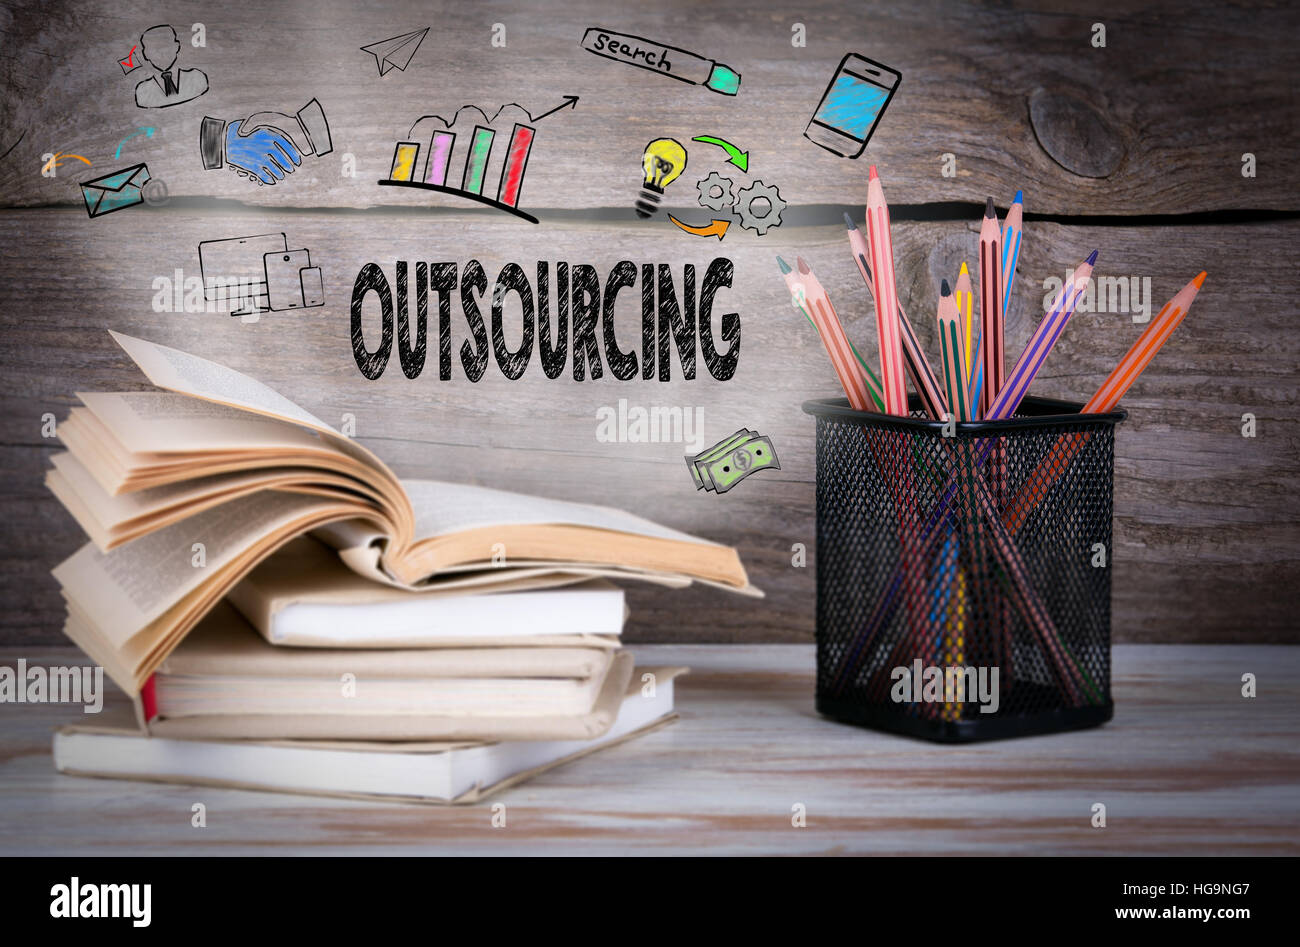 Outsourcing, Business Concept. Stack of books and pencils on the wooden table - Stock Image